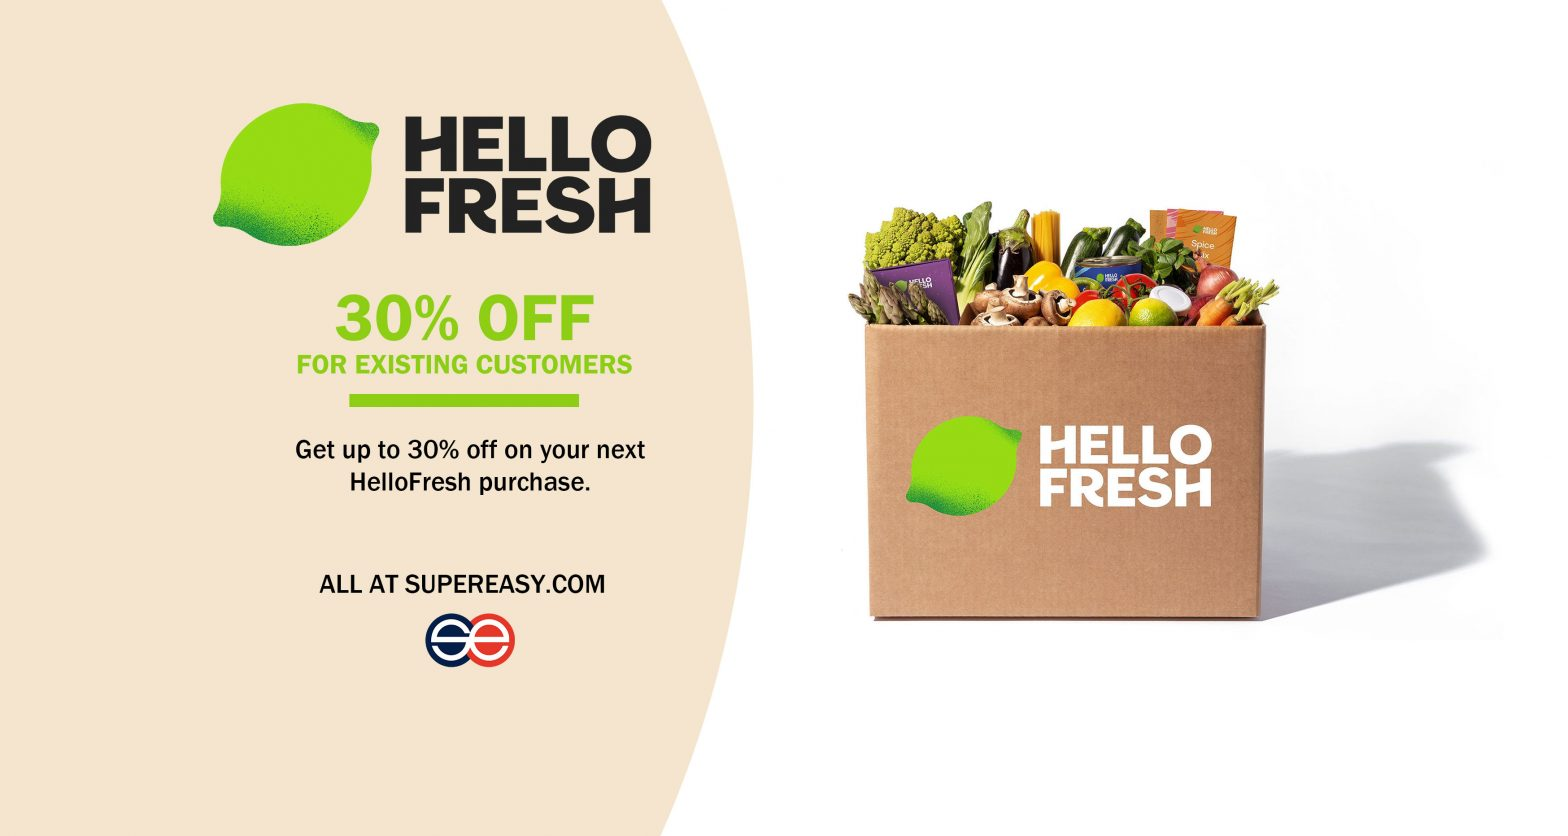 hellofresh discount codes for existing customers